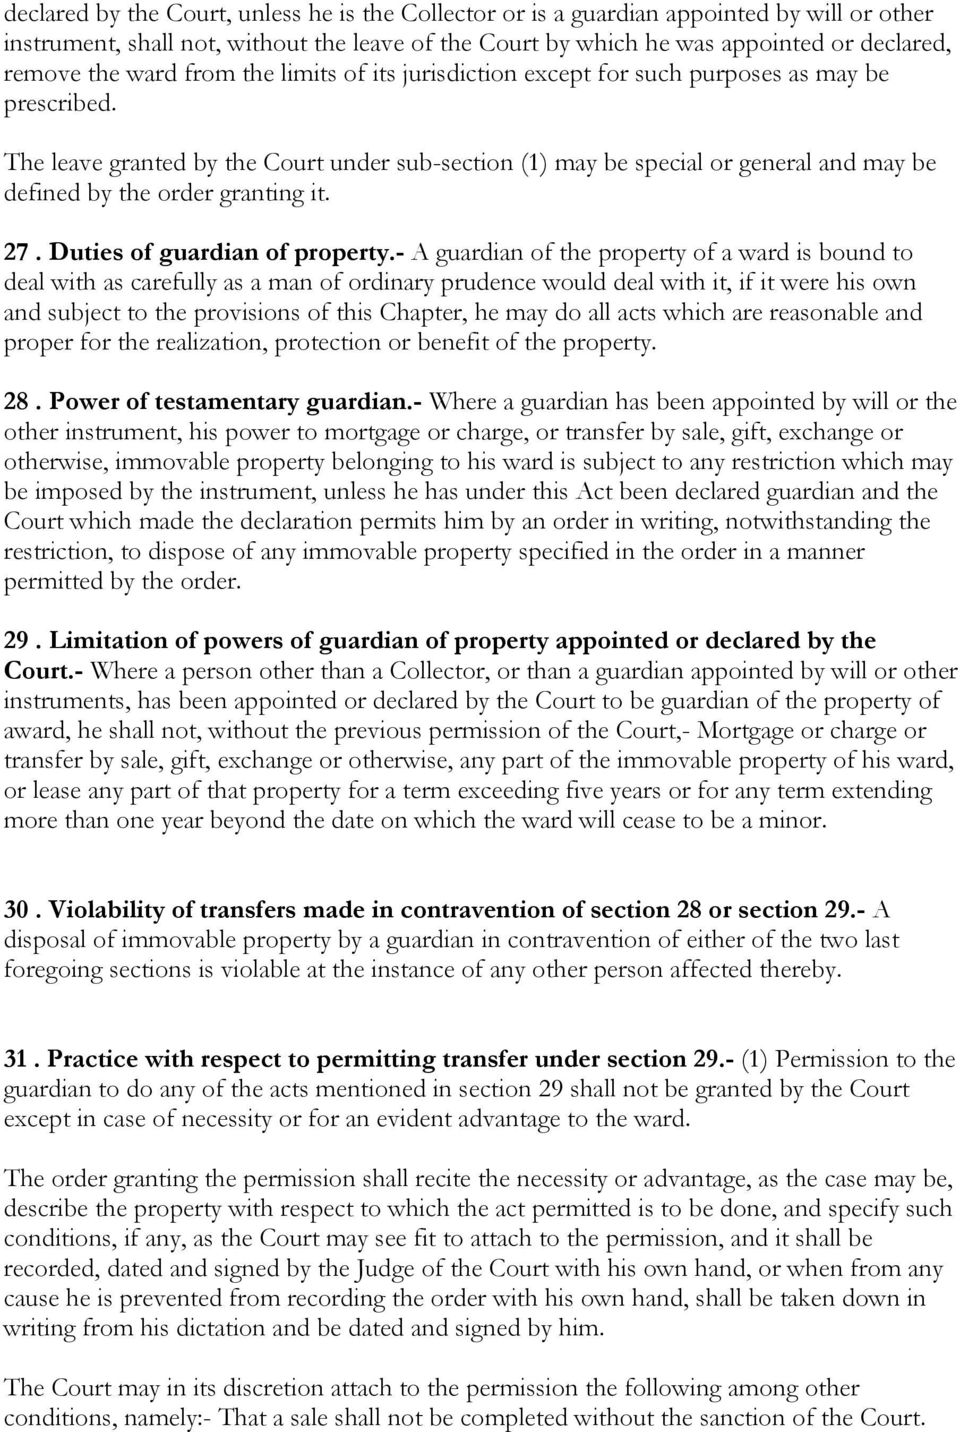 The leave granted by the Court under sub-section (1) may be special or general and may be defined by the order granting it. 27. Duties of guardian of property.